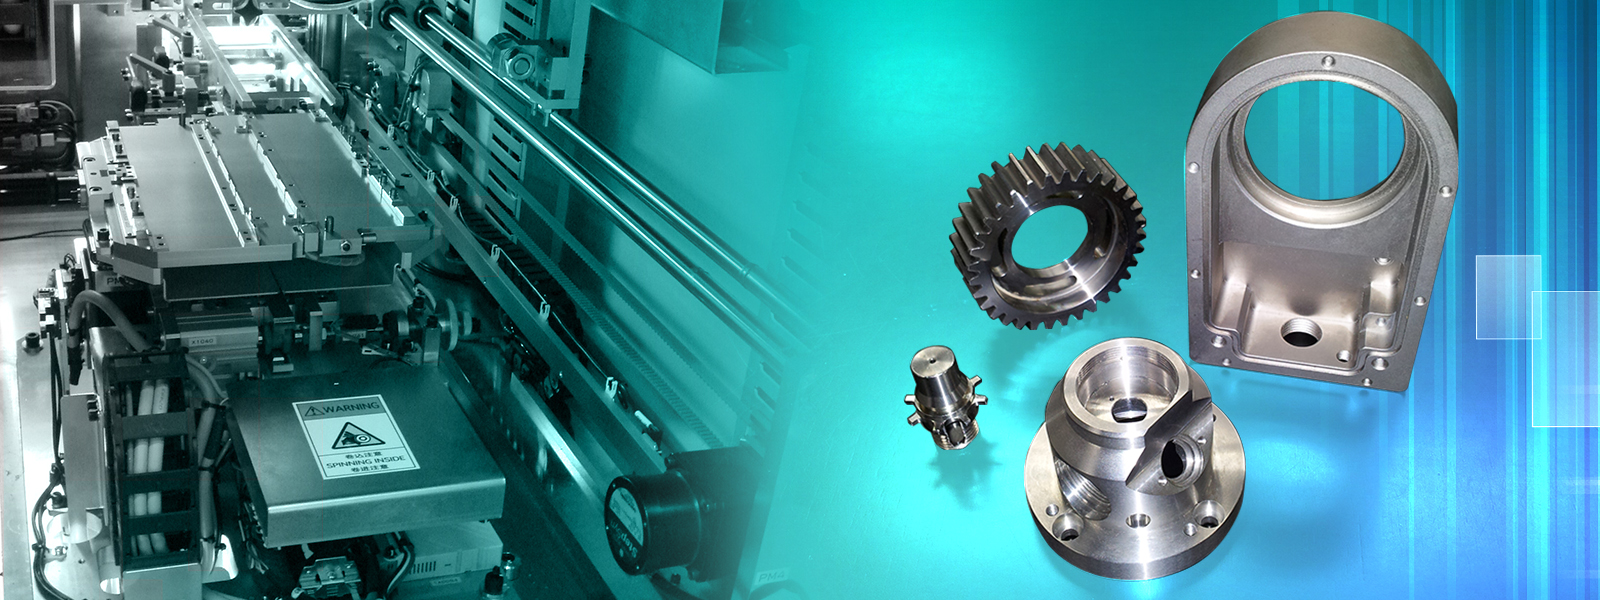 Fabrication of Machine Parts